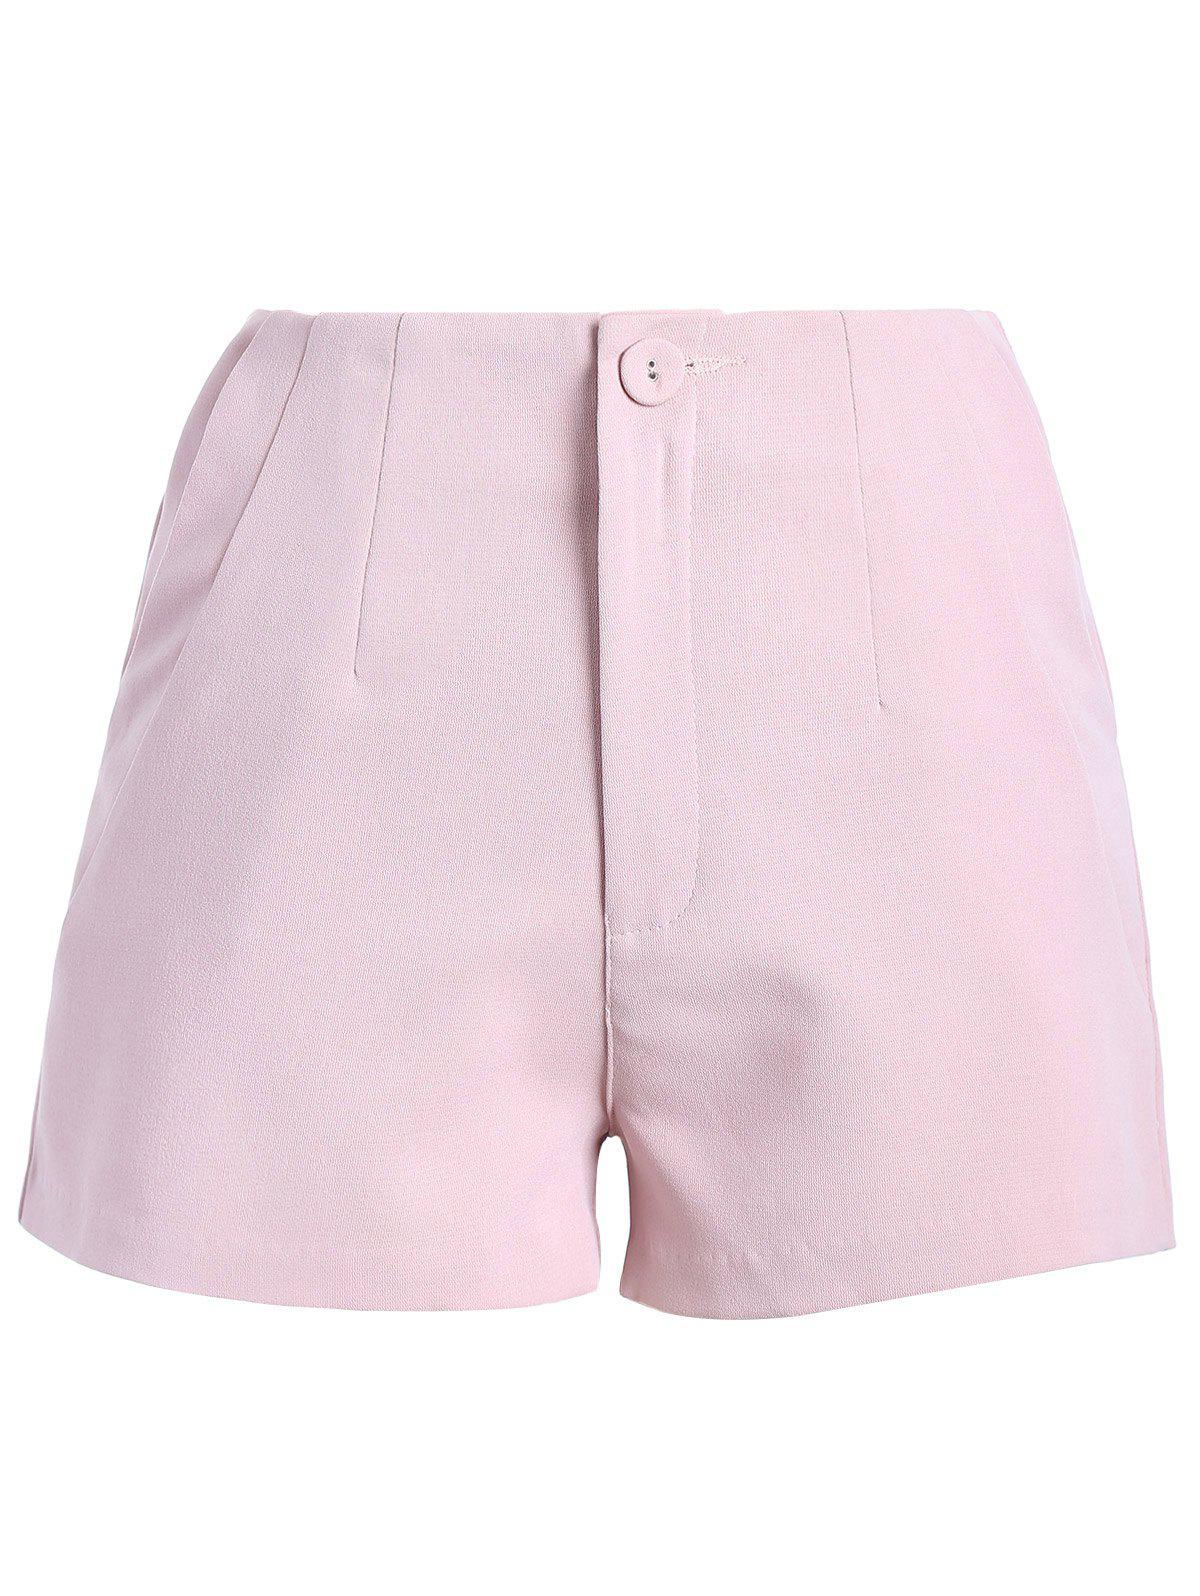 Stylish Women's Solid Color Zipper Fly Shorts - SHALLOW PINK M